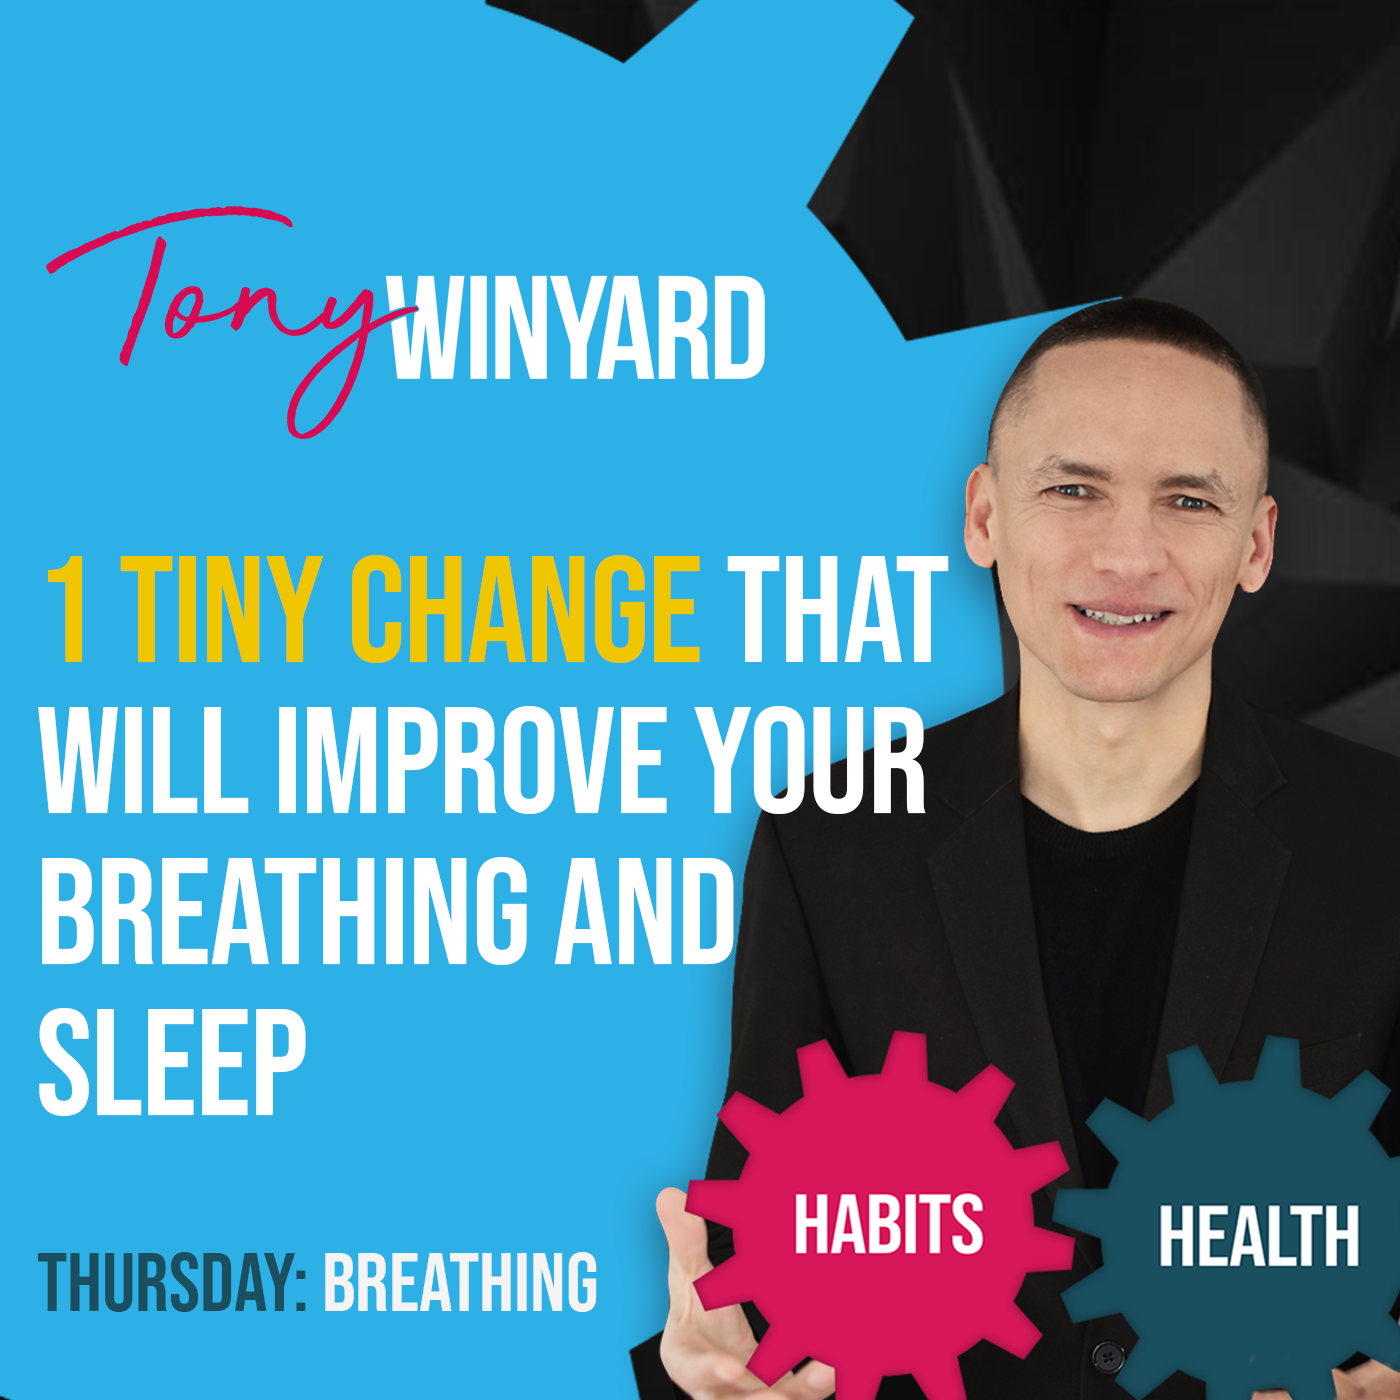 1 tiny change that will improve your breathing and sleep